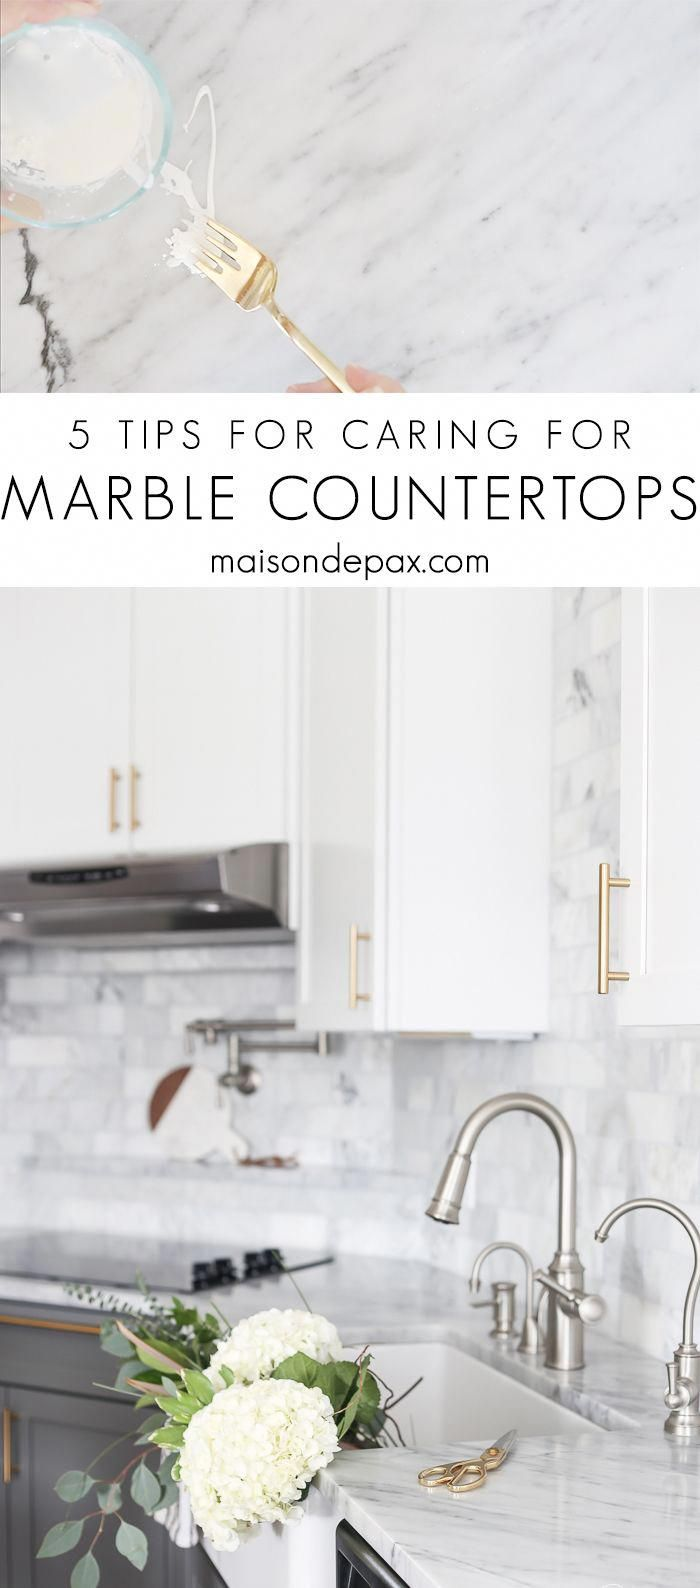 How to Care for Marble Countertops - Maison de Pax #marblecountertops